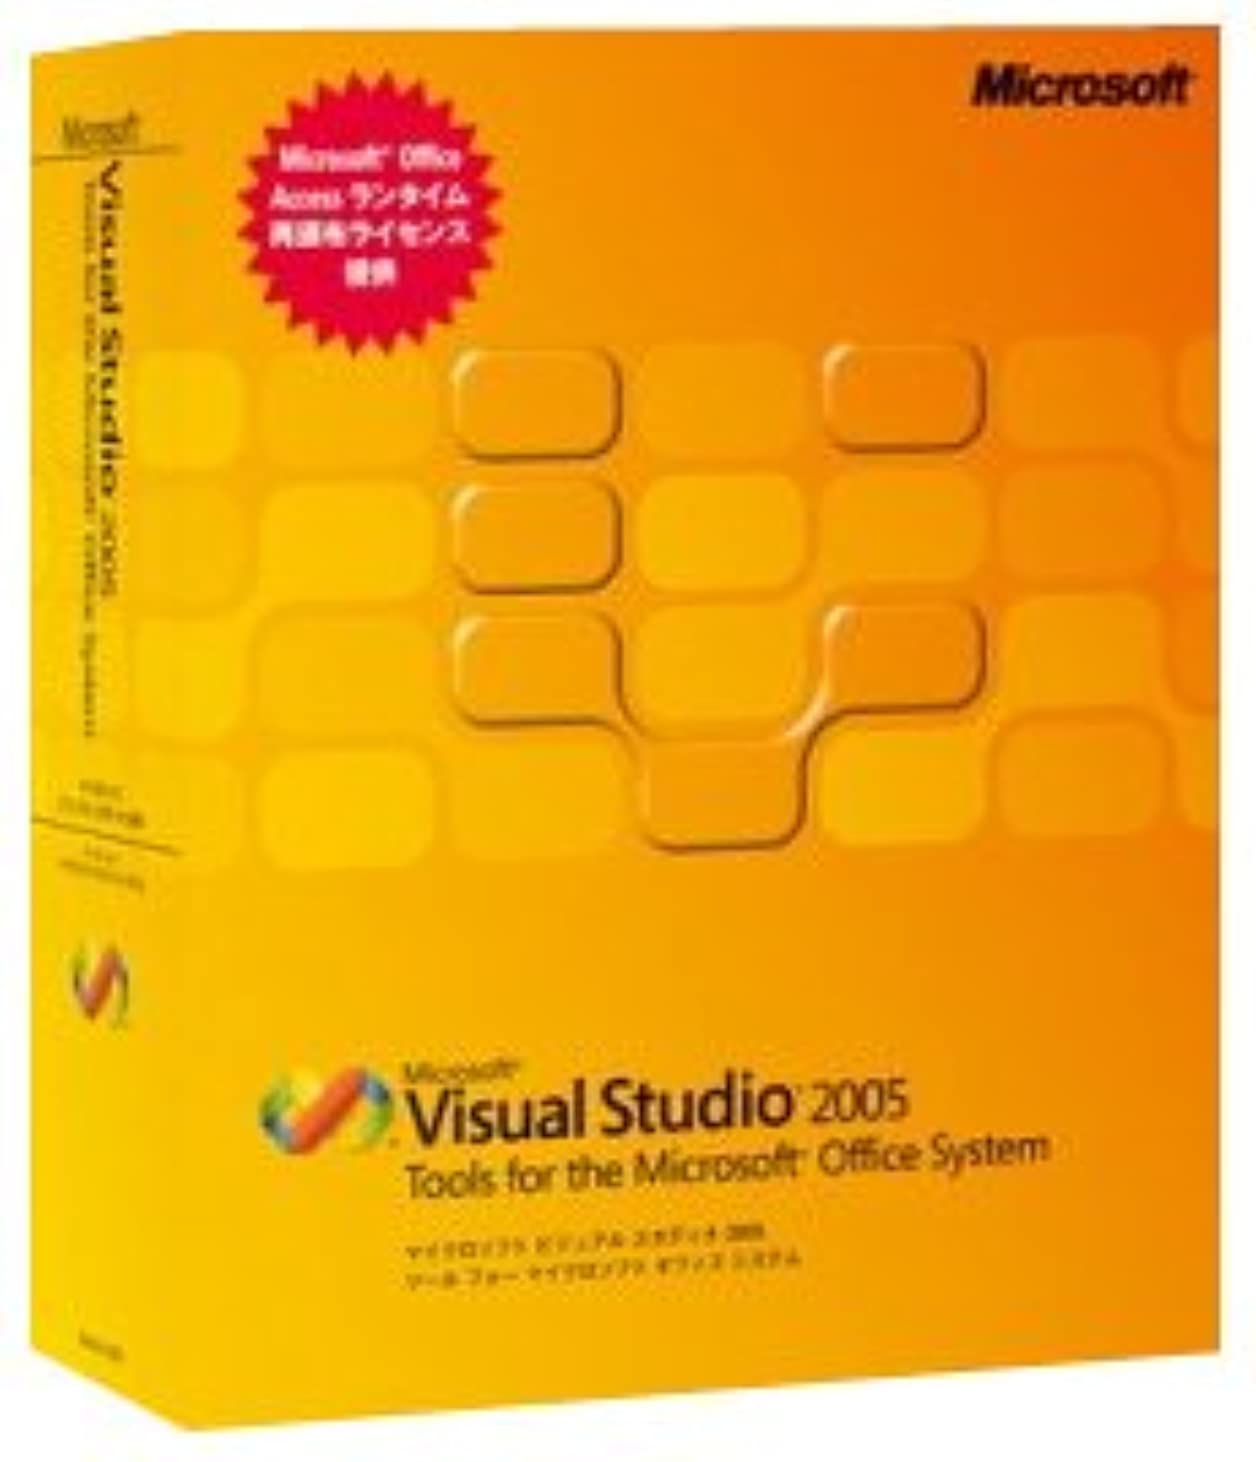 Visual Studio Tools For Office 2005